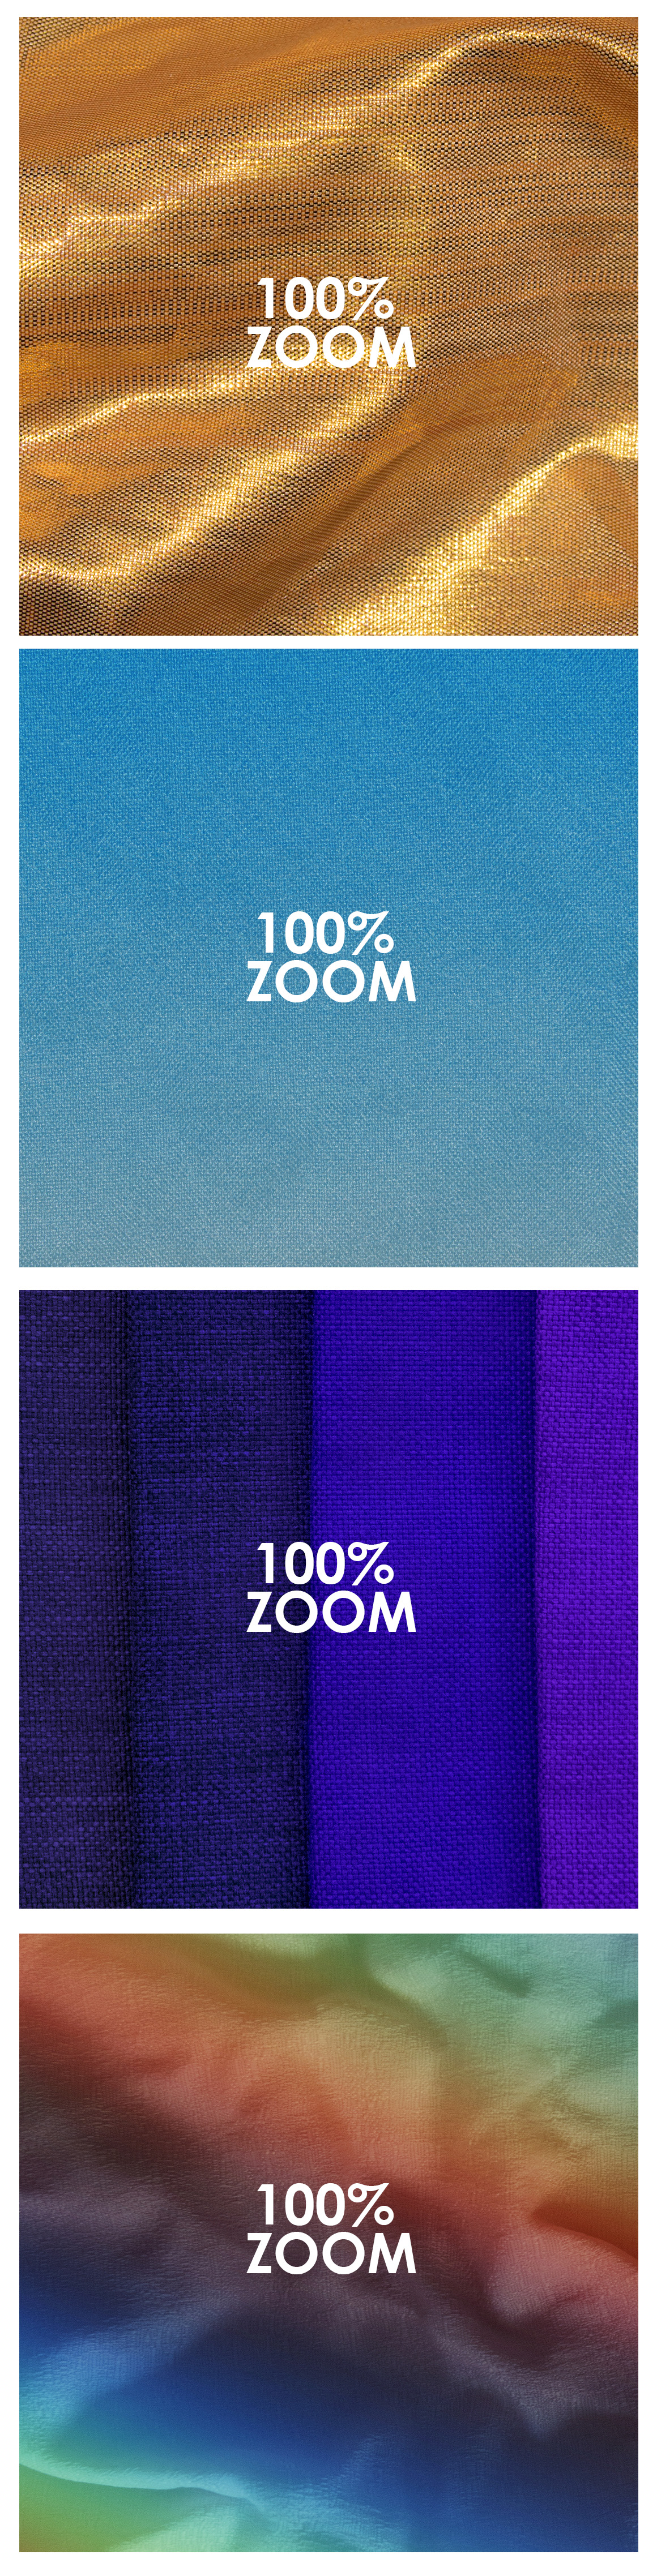 Textile & Fabric Backgrounds example image 3